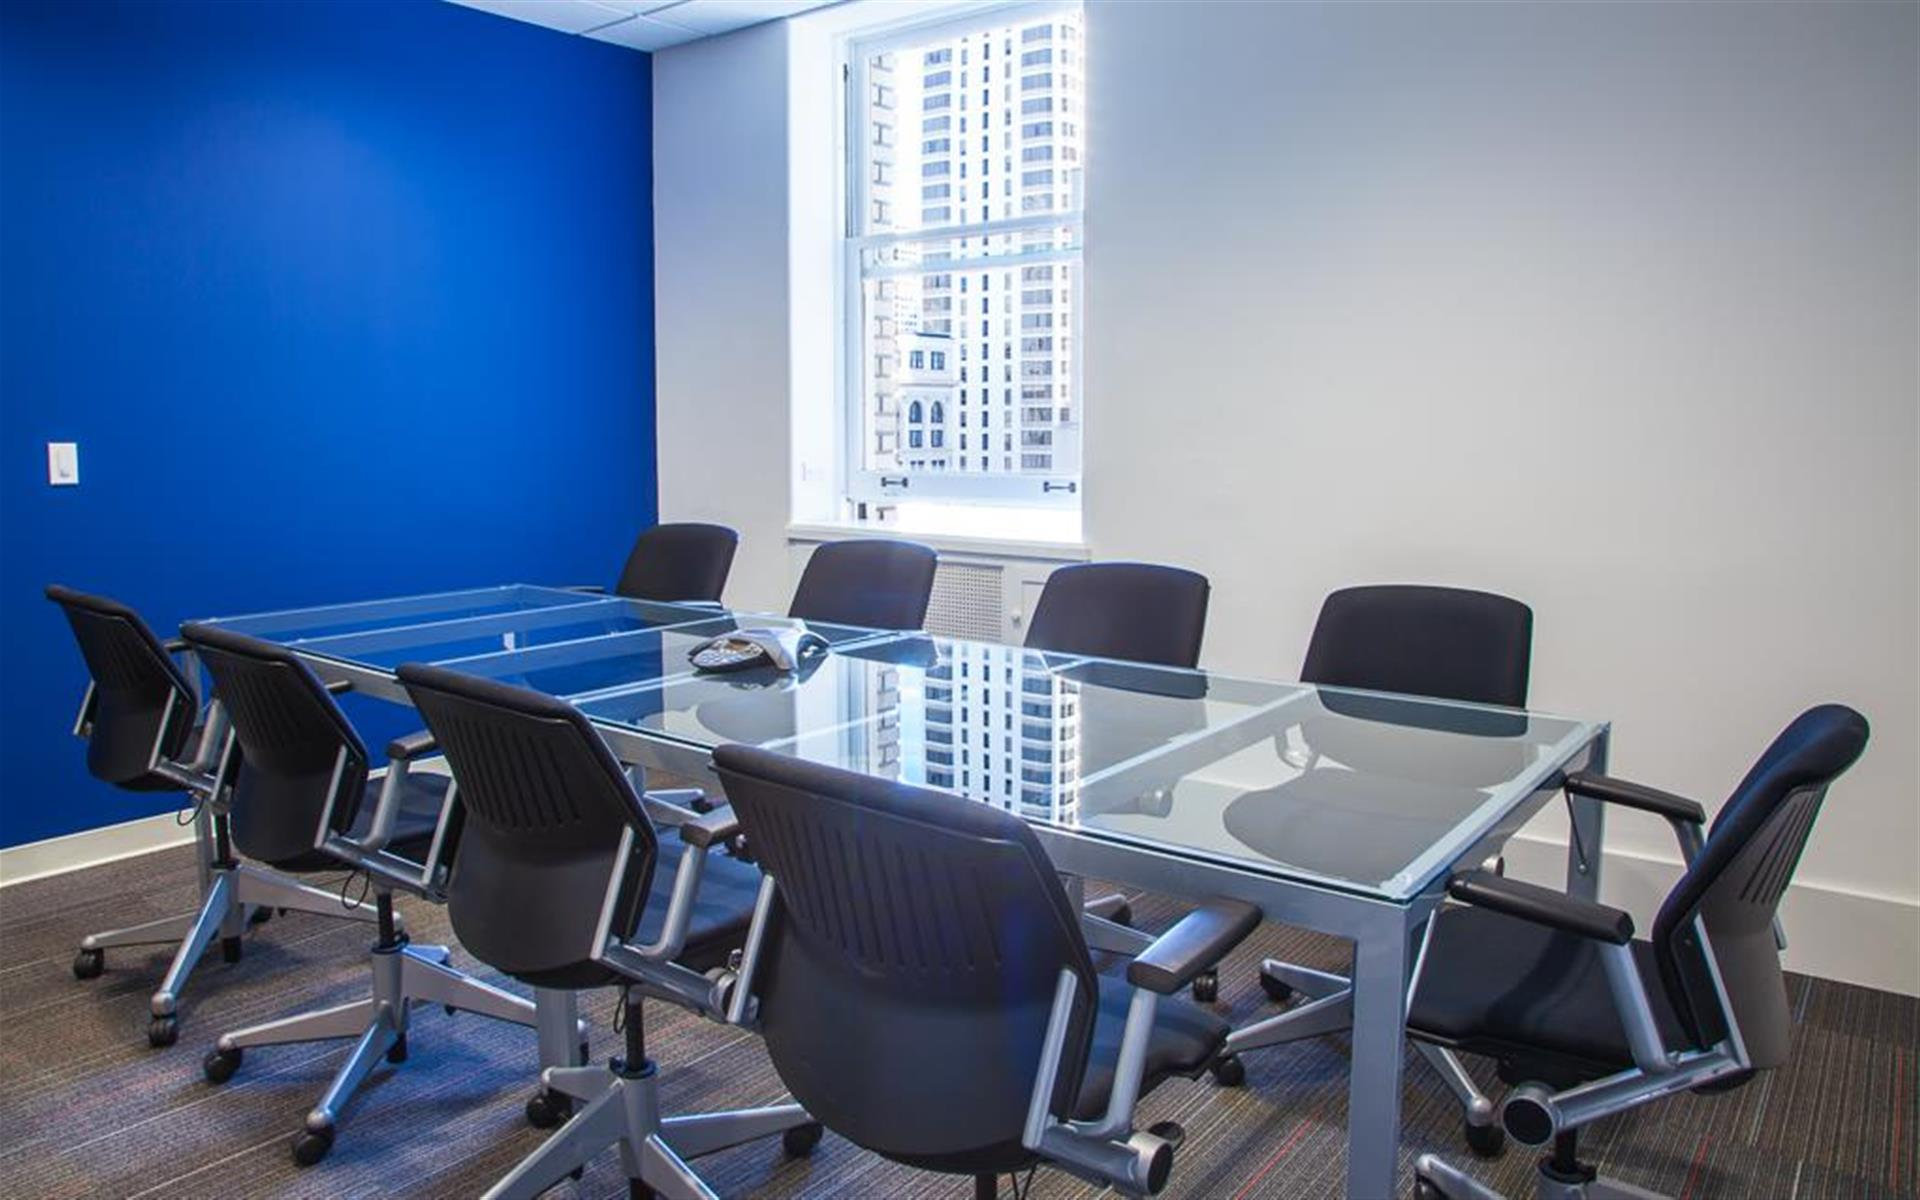 Andiamo! Group - Conference Rooms - Milano Conference Room